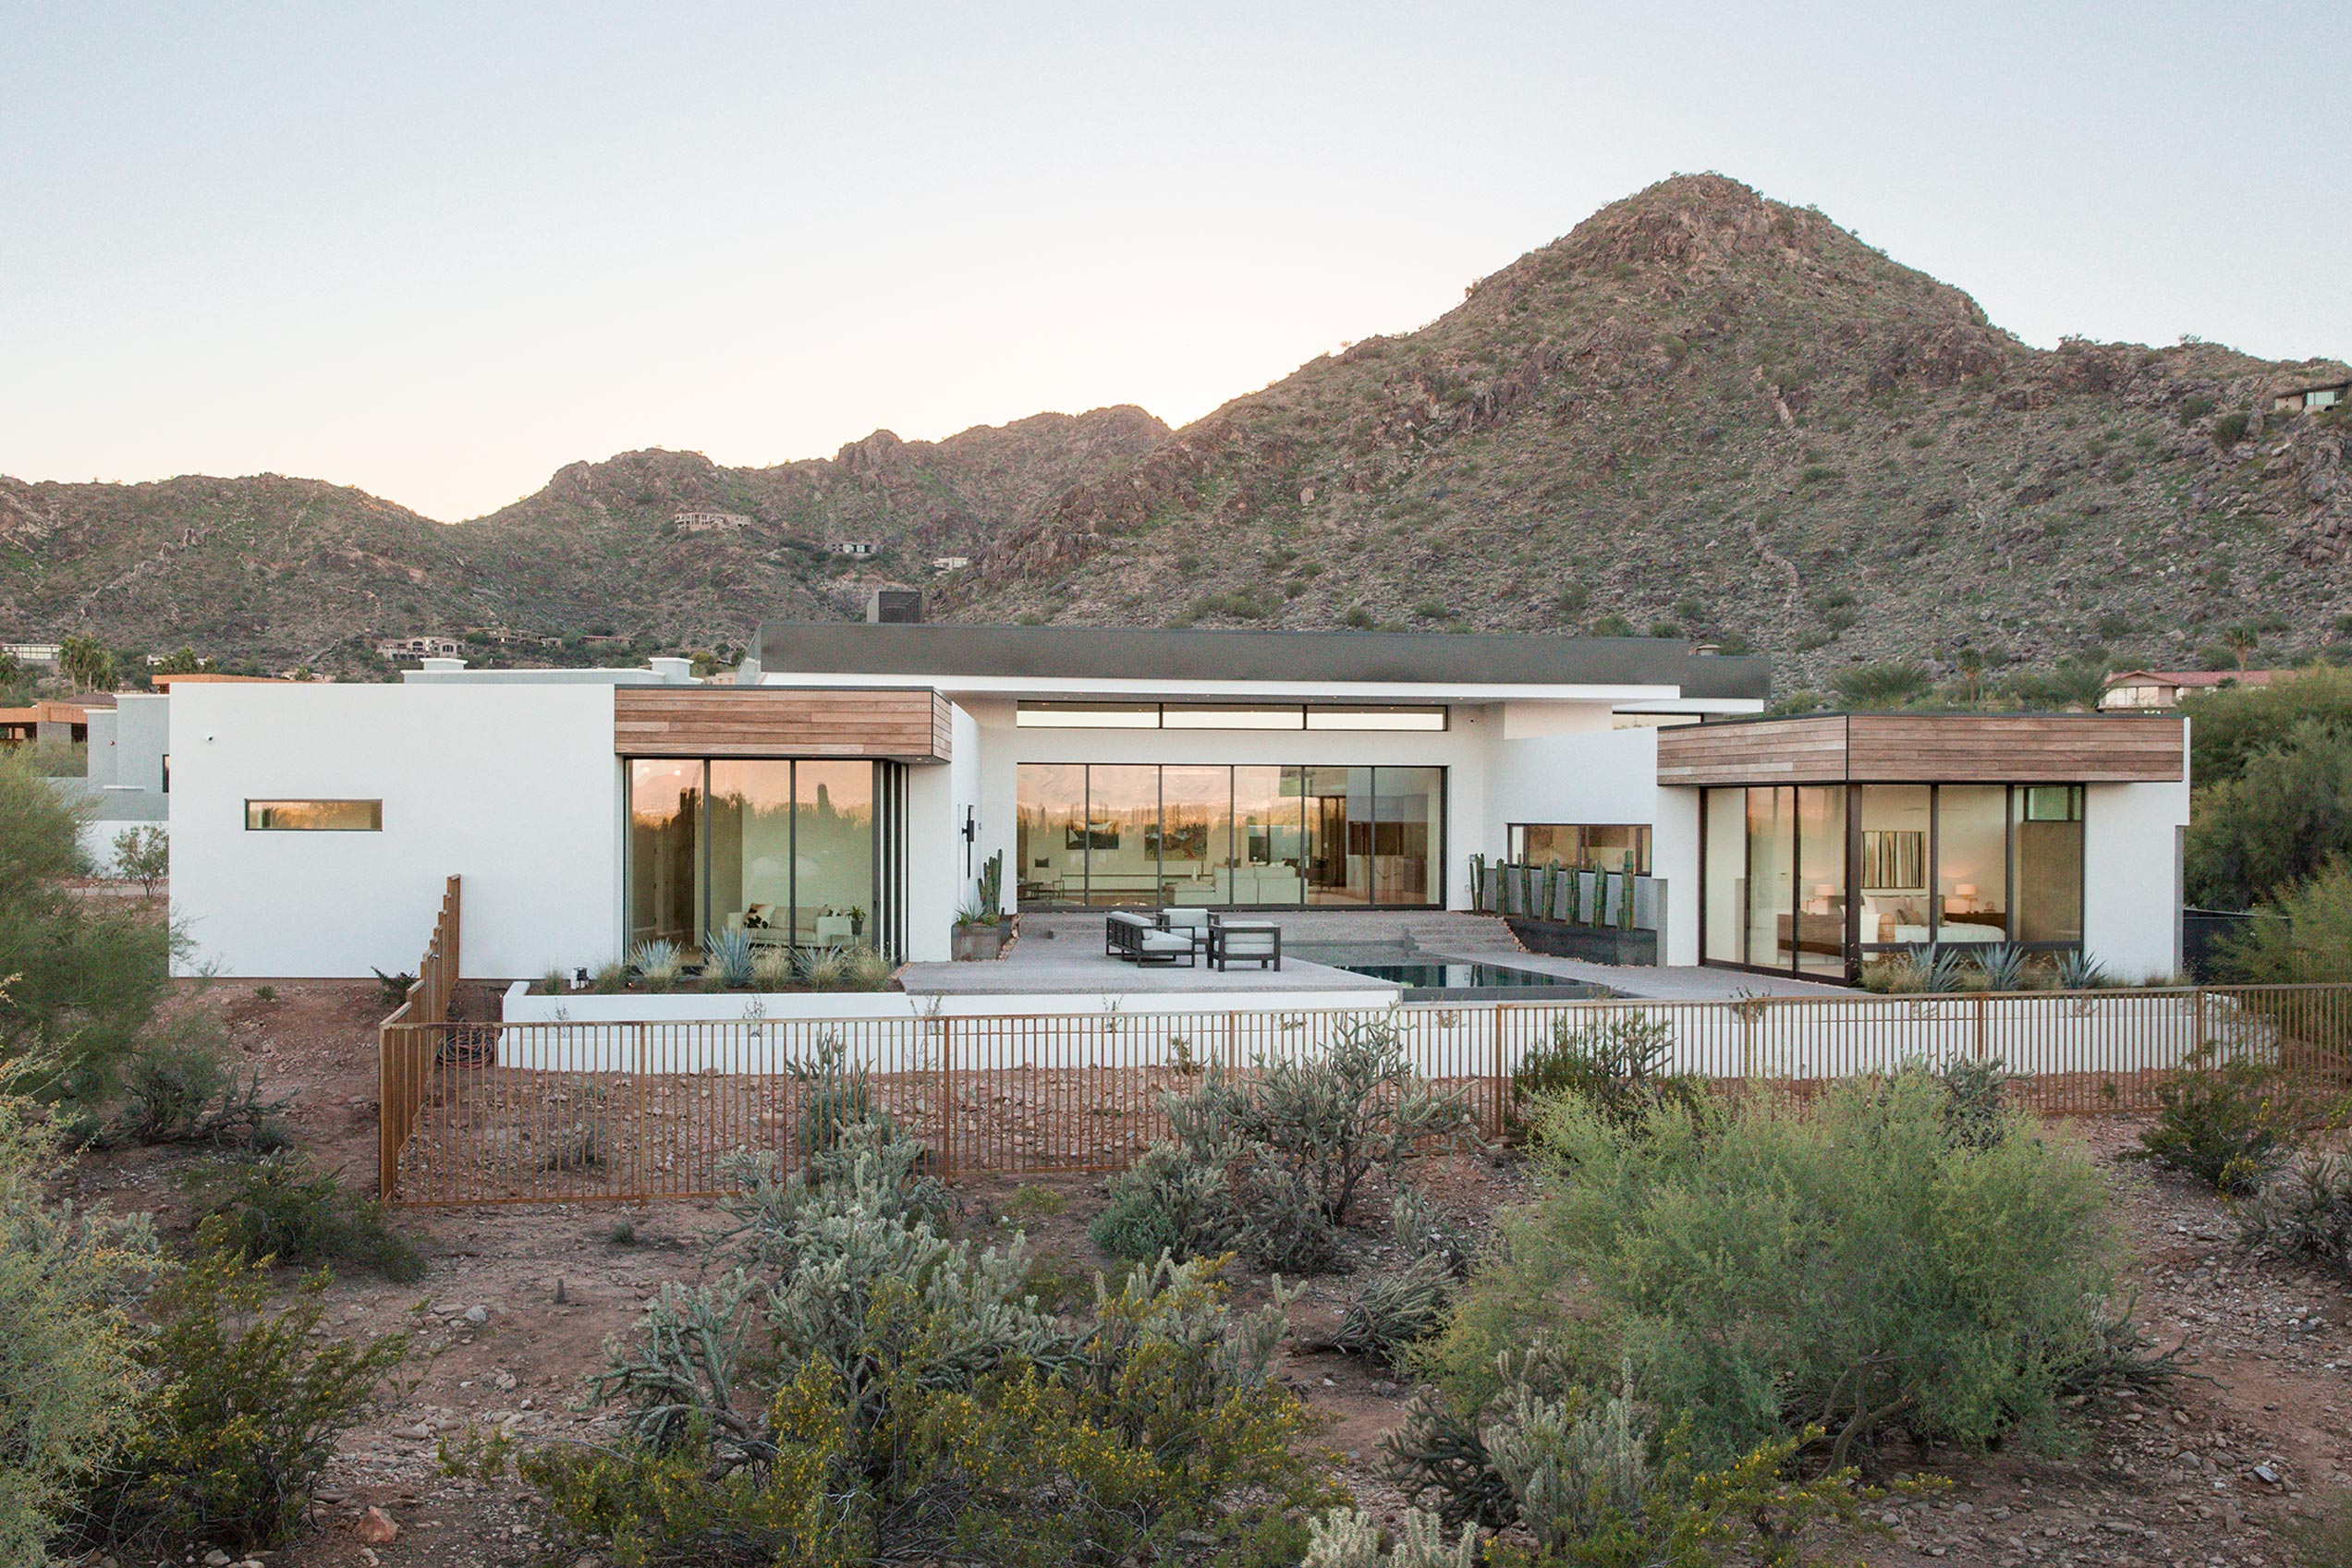 The 6,200-square-foot home's slight elevation maximizes the views through the massive windows.